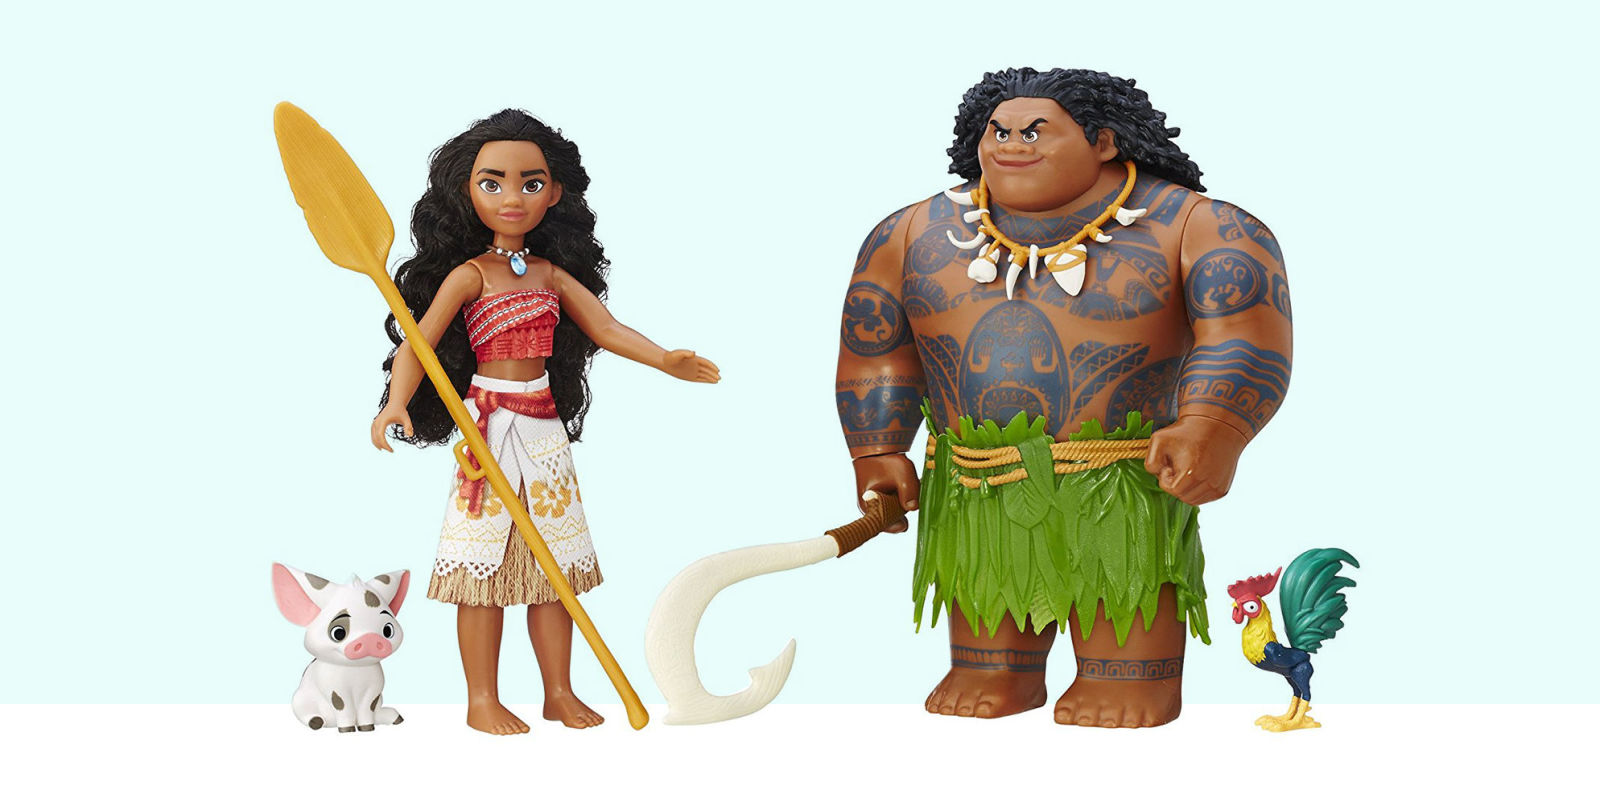 Best Disney Toys And Games For Kids : Best moana toys for kids in inspired